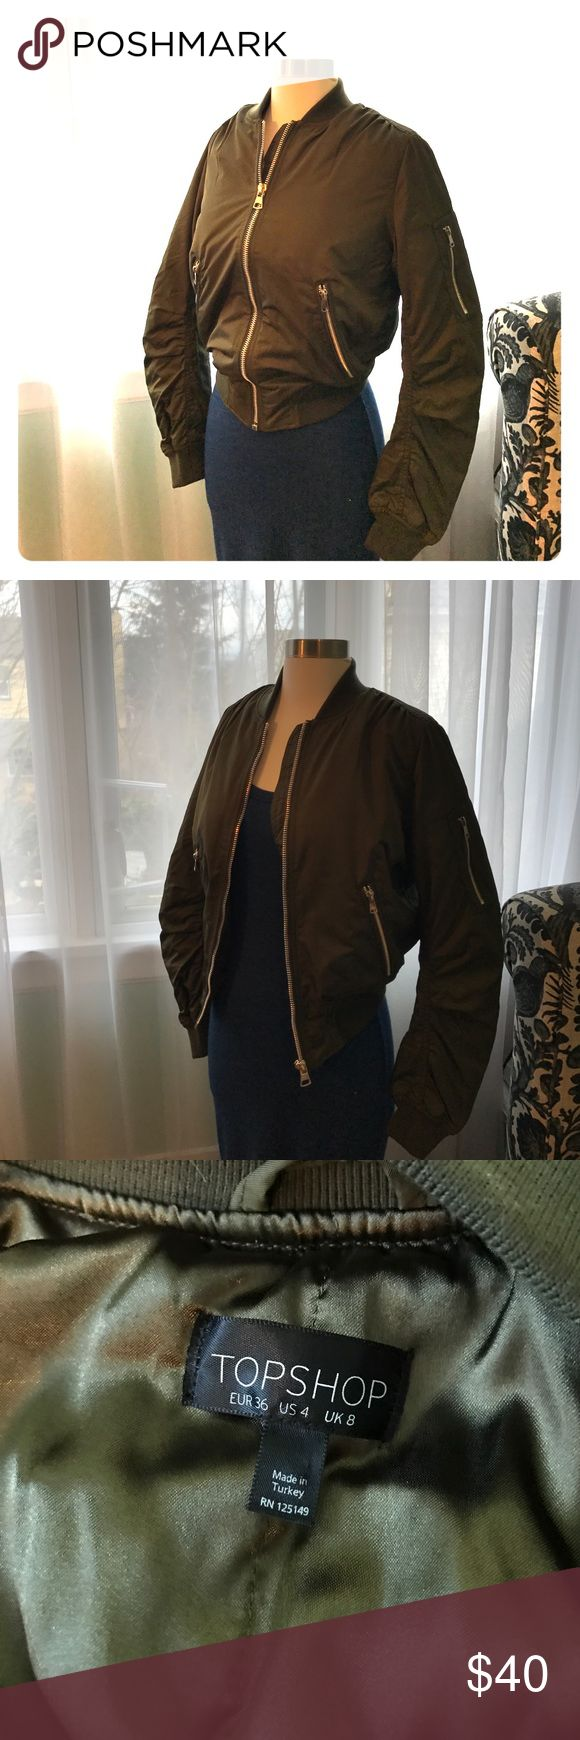 Topshop Nylon Bomber Jacket Size 4 New without tags! Topshop nylon bomber in Olive Green. Size US 4. Gold zippers. Perfect Condition! Topshop Jackets & Coats